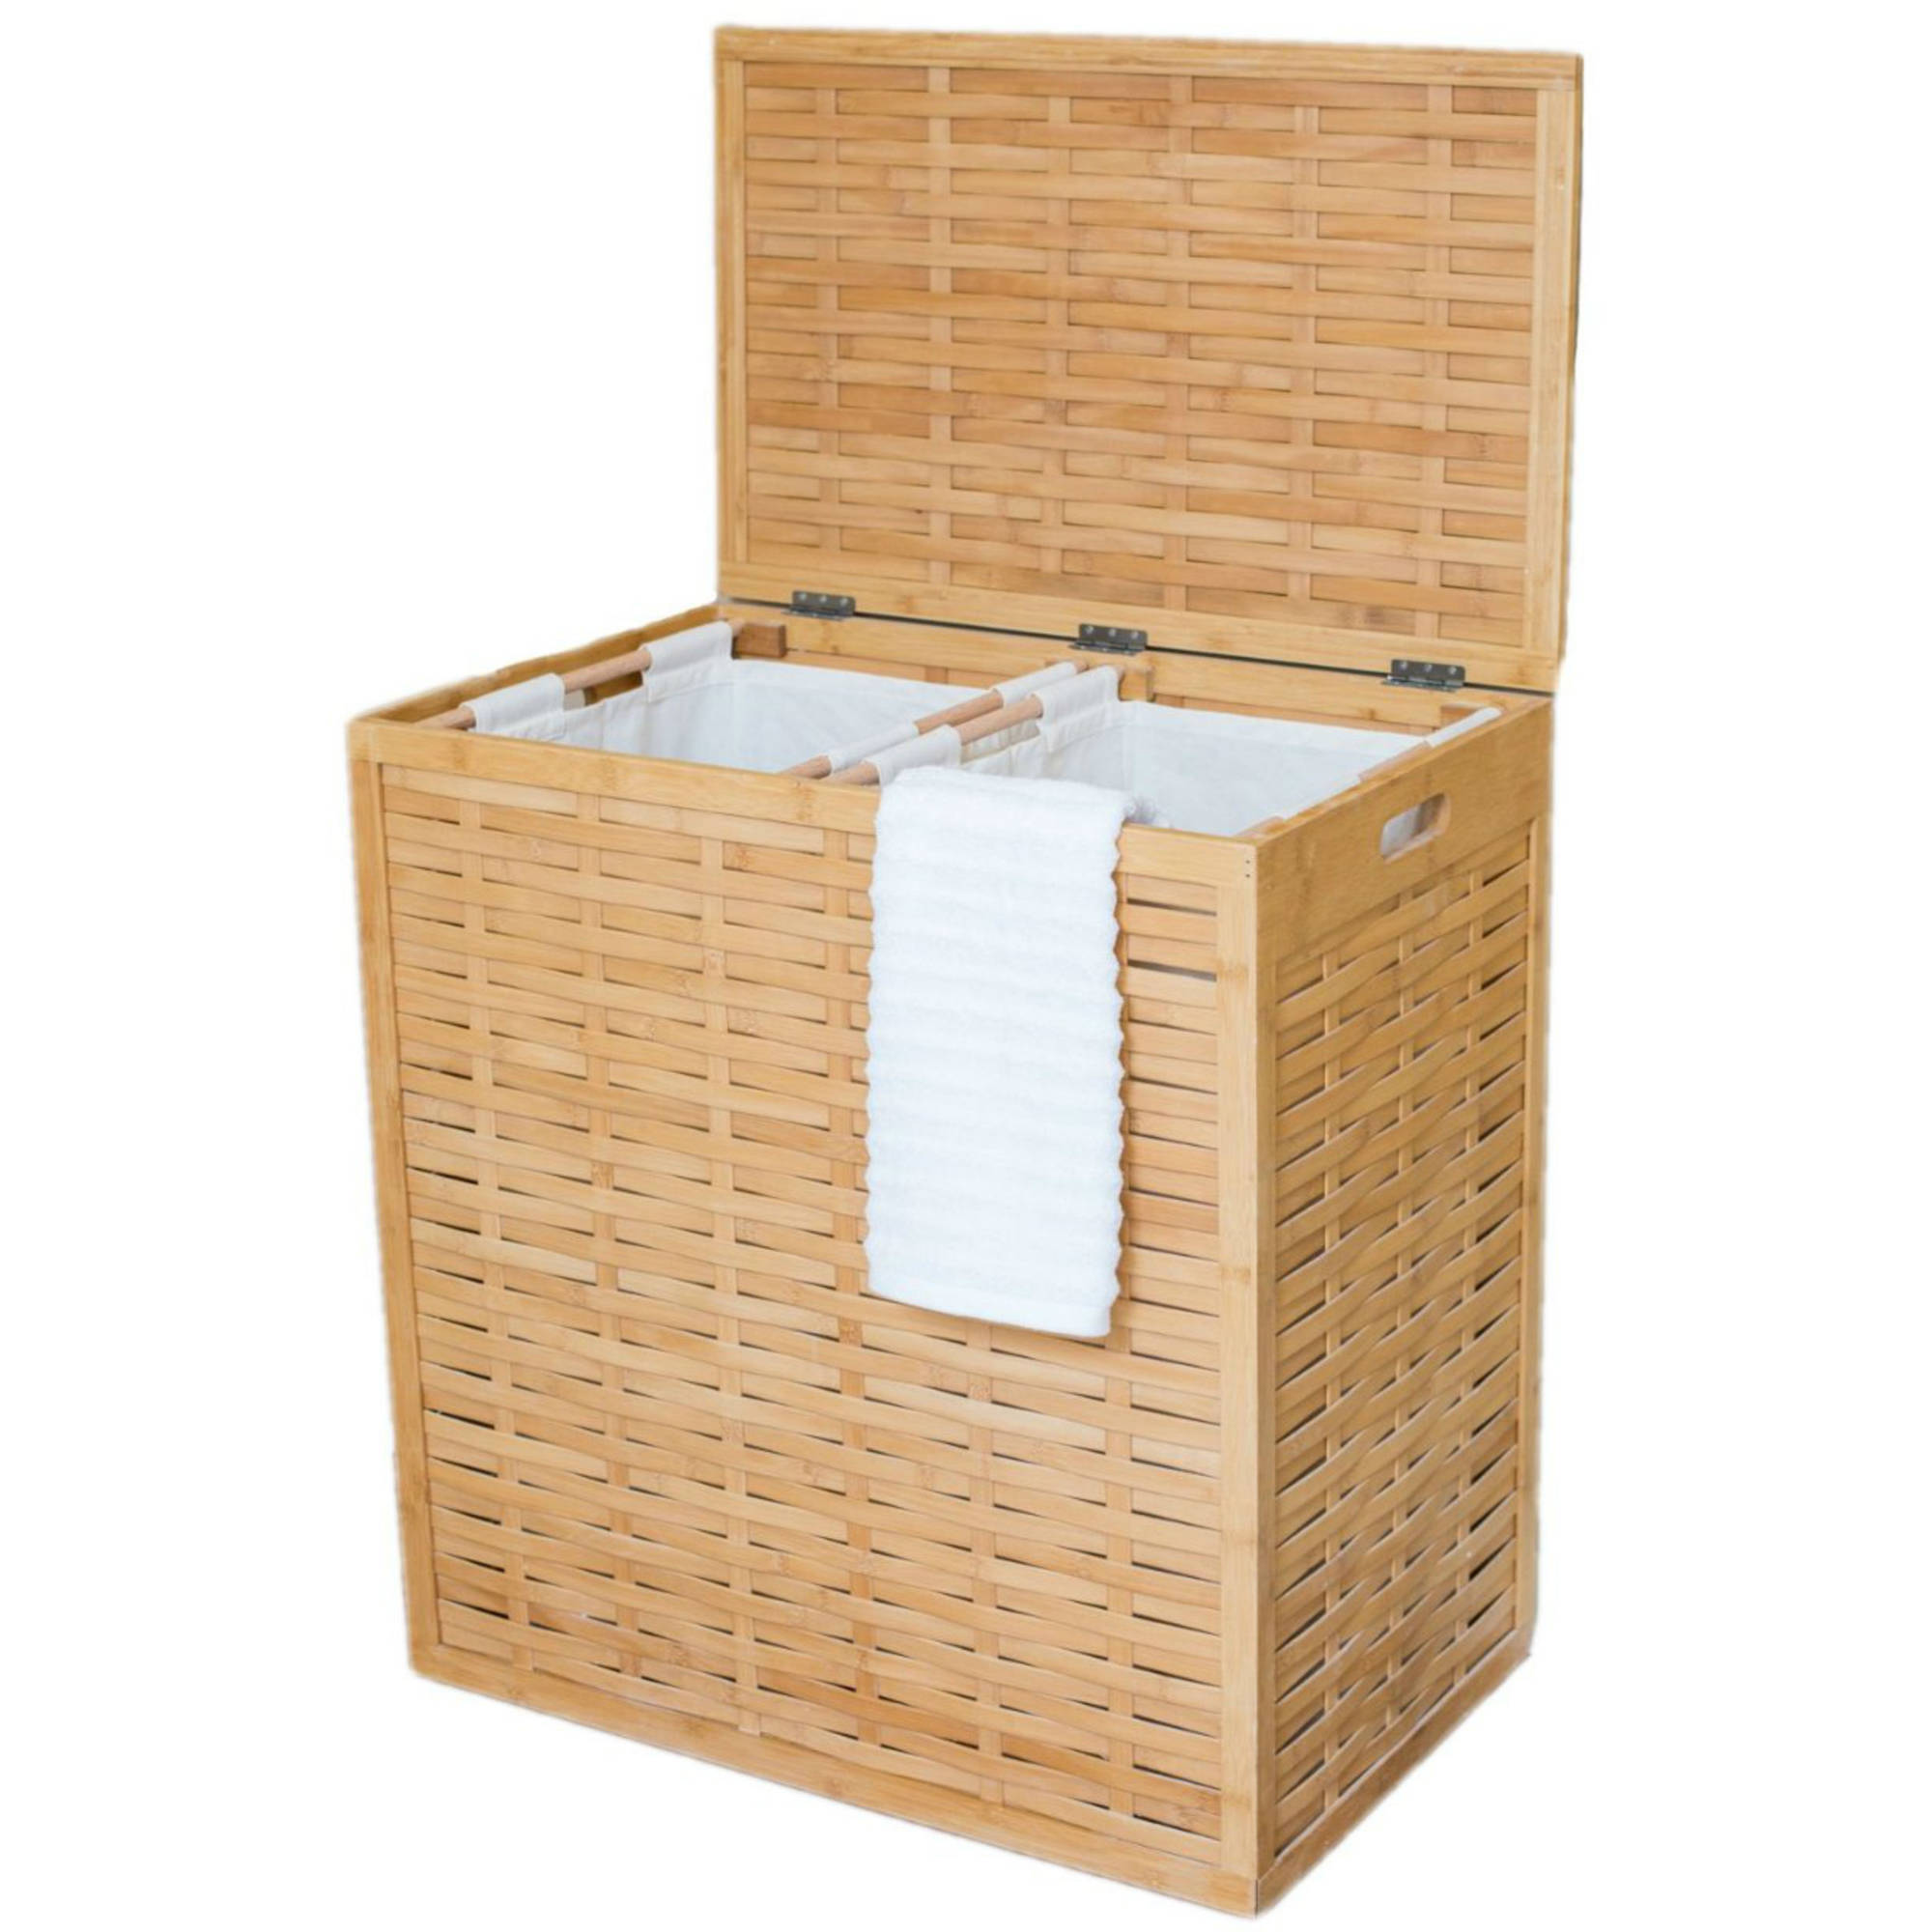 BirdRock Home Divided Bamboo Hamper